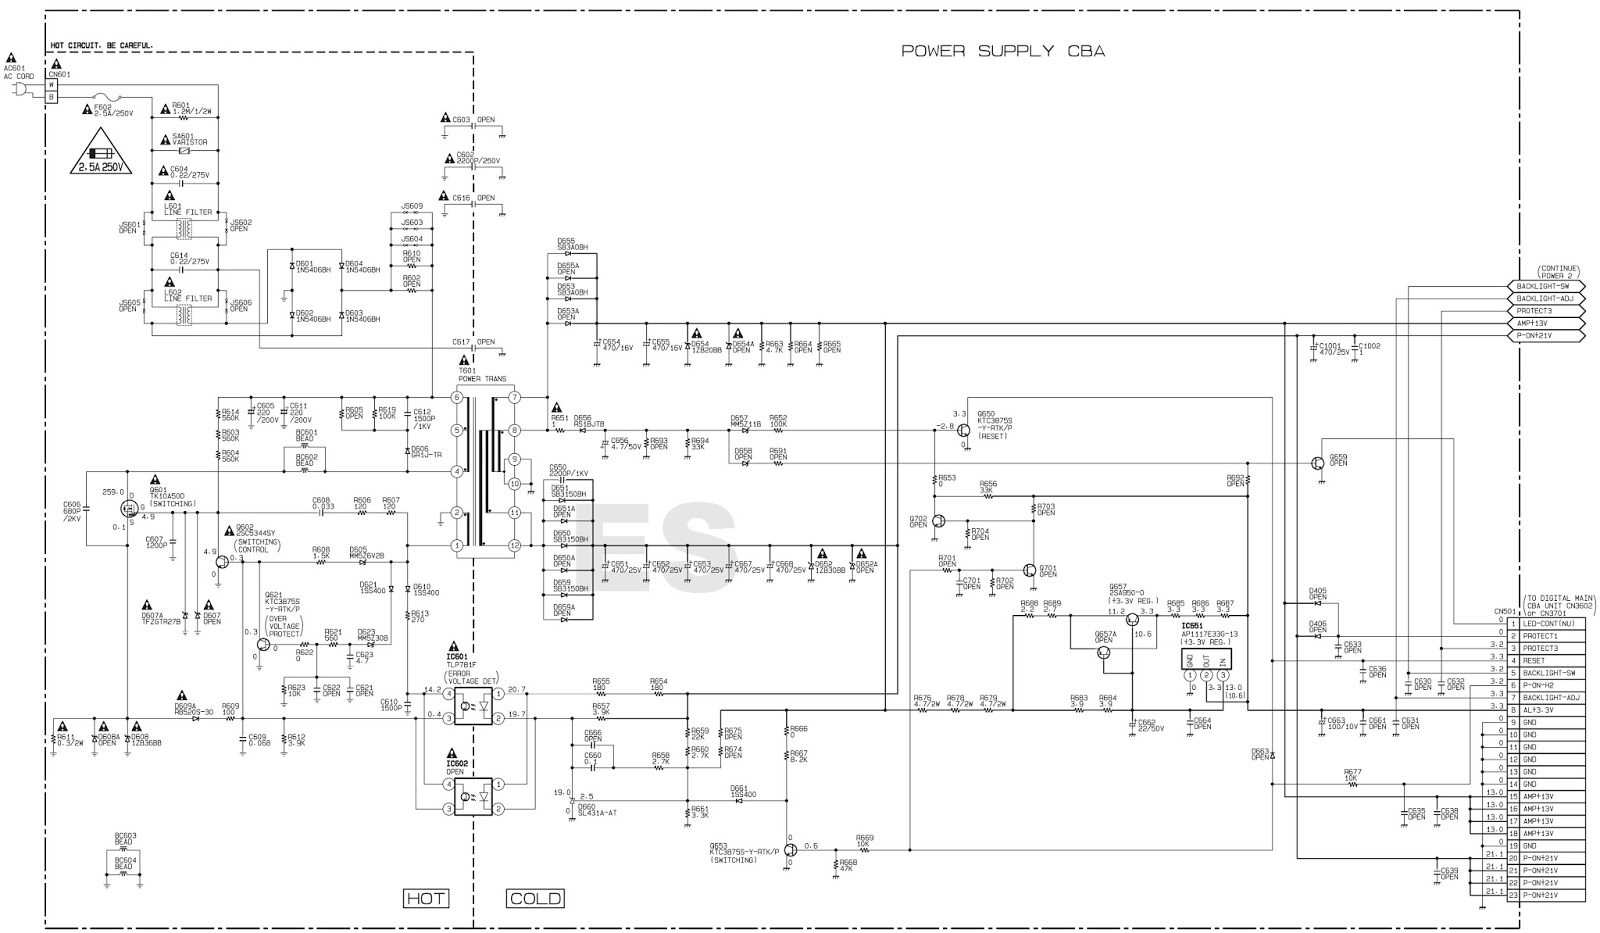 funai tv schematic diagram wiring diagram datasourcefirmware download how to enter service mode emerson lcd tv [ 1600 x 933 Pixel ]